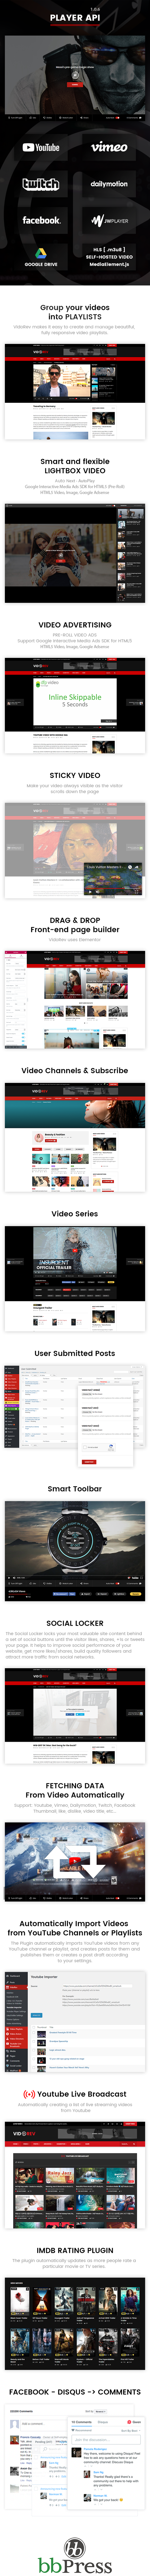 VidoRev - Video WordPress Theme - 10